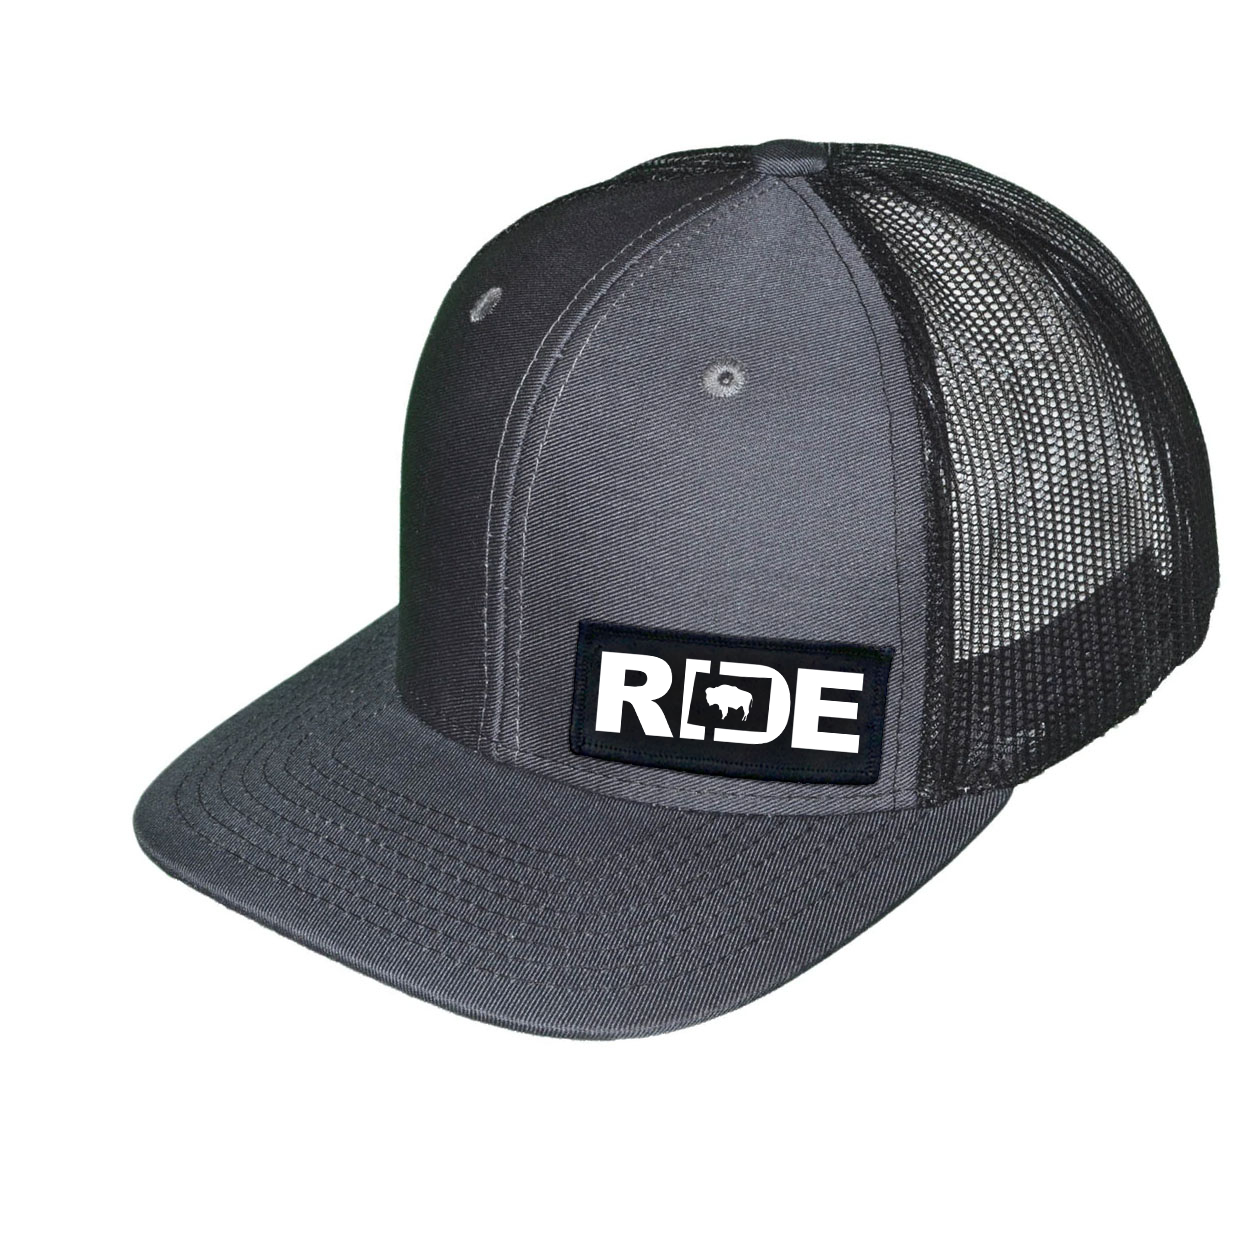 Ride Wyoming Night Out Woven Patch Snapback Trucker Hat Dark Gray/Black (White Logo)